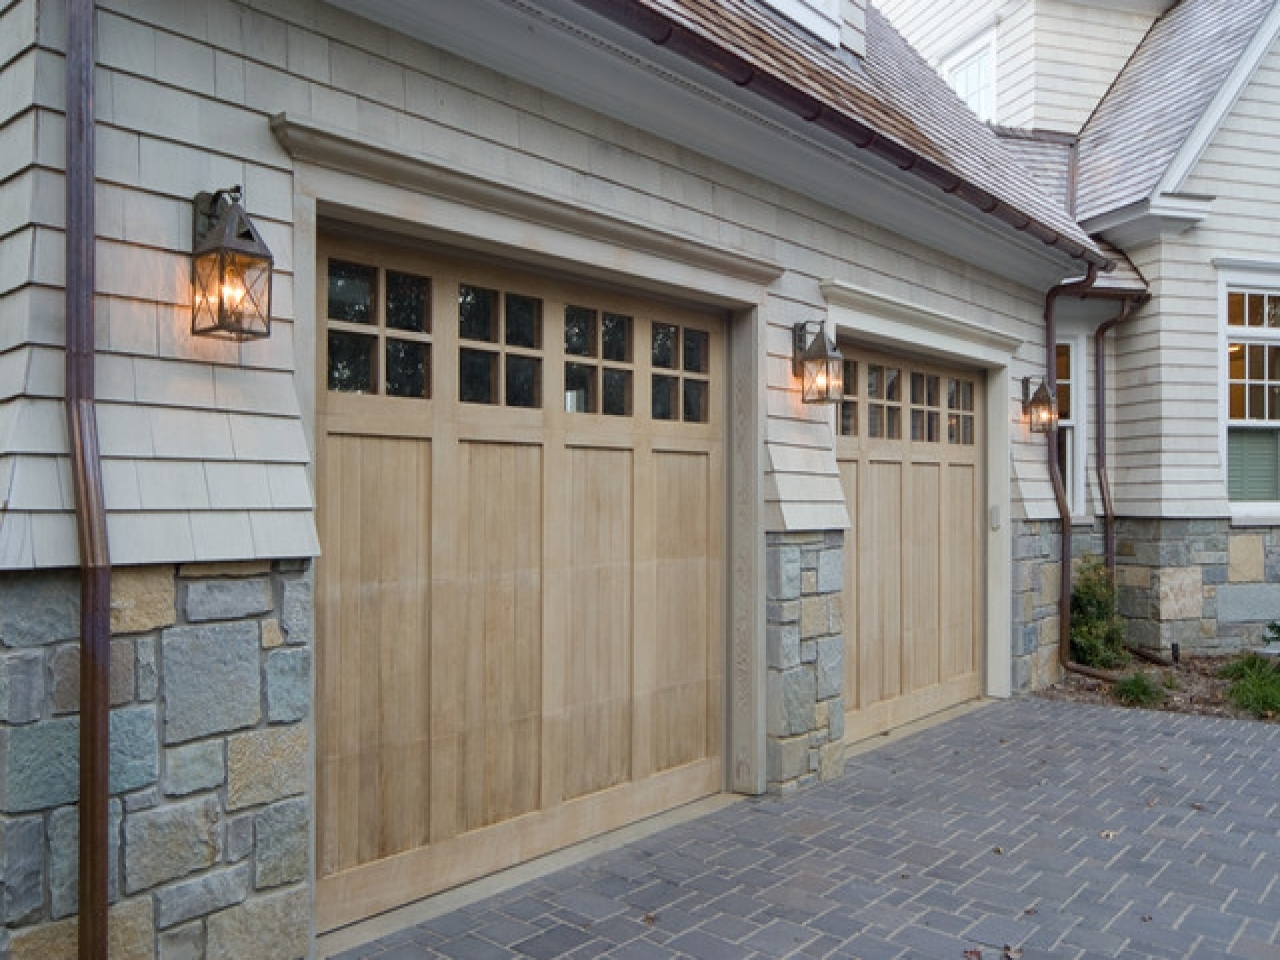 Preferred Outdoor Wall Garage Lights With Outdoor Garage : Garden Wall Lights Led Landscape Lighting Porch (View 19 of 20)